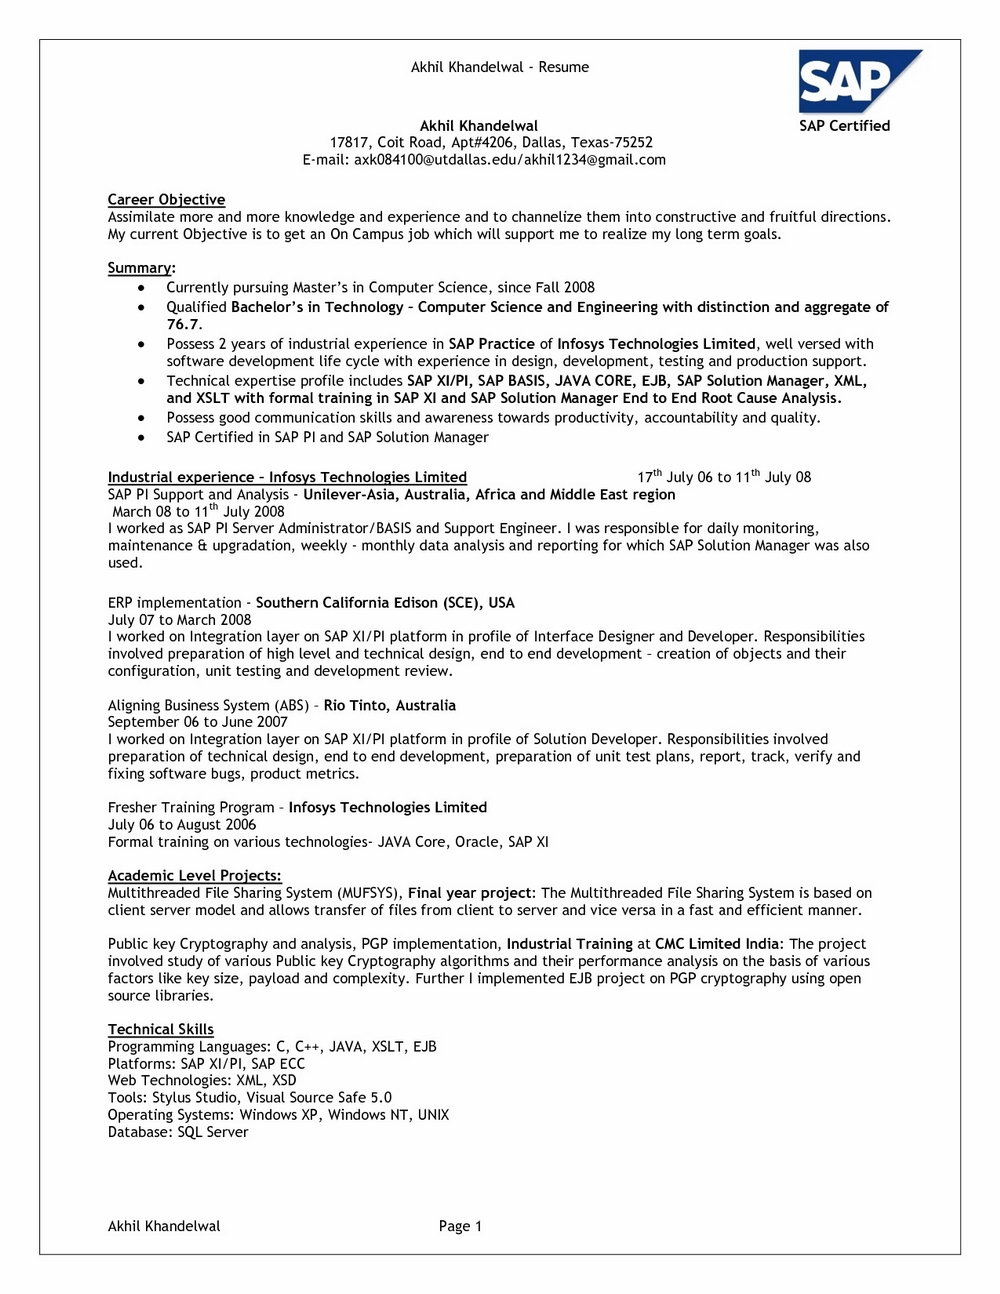 Resume For Sap Fico Freshers